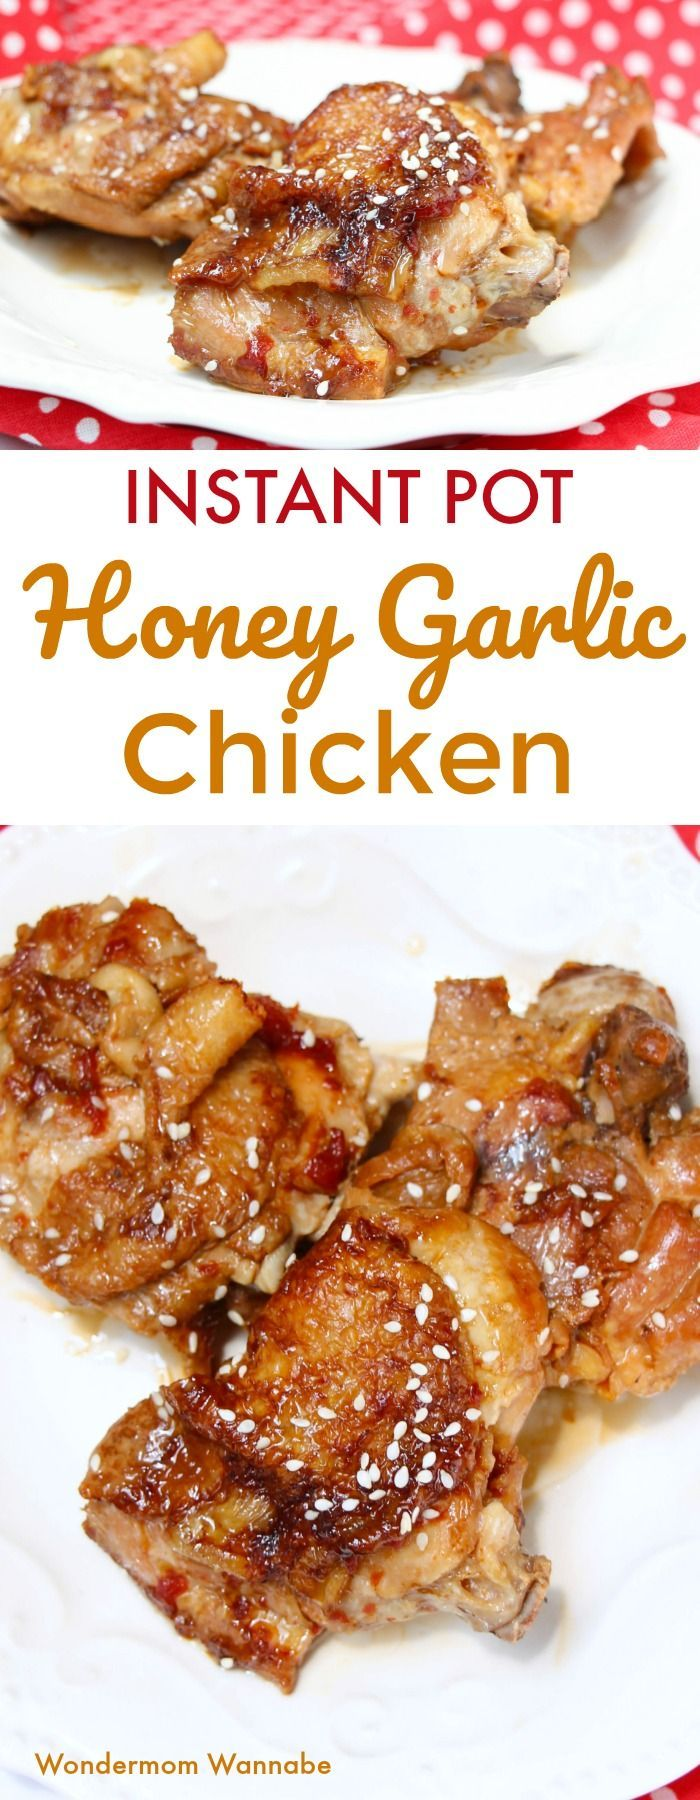 My kids love this Instant Pot Honey Garlic Chicken! So much cheaper and healthier than ordering Chinese takeout.